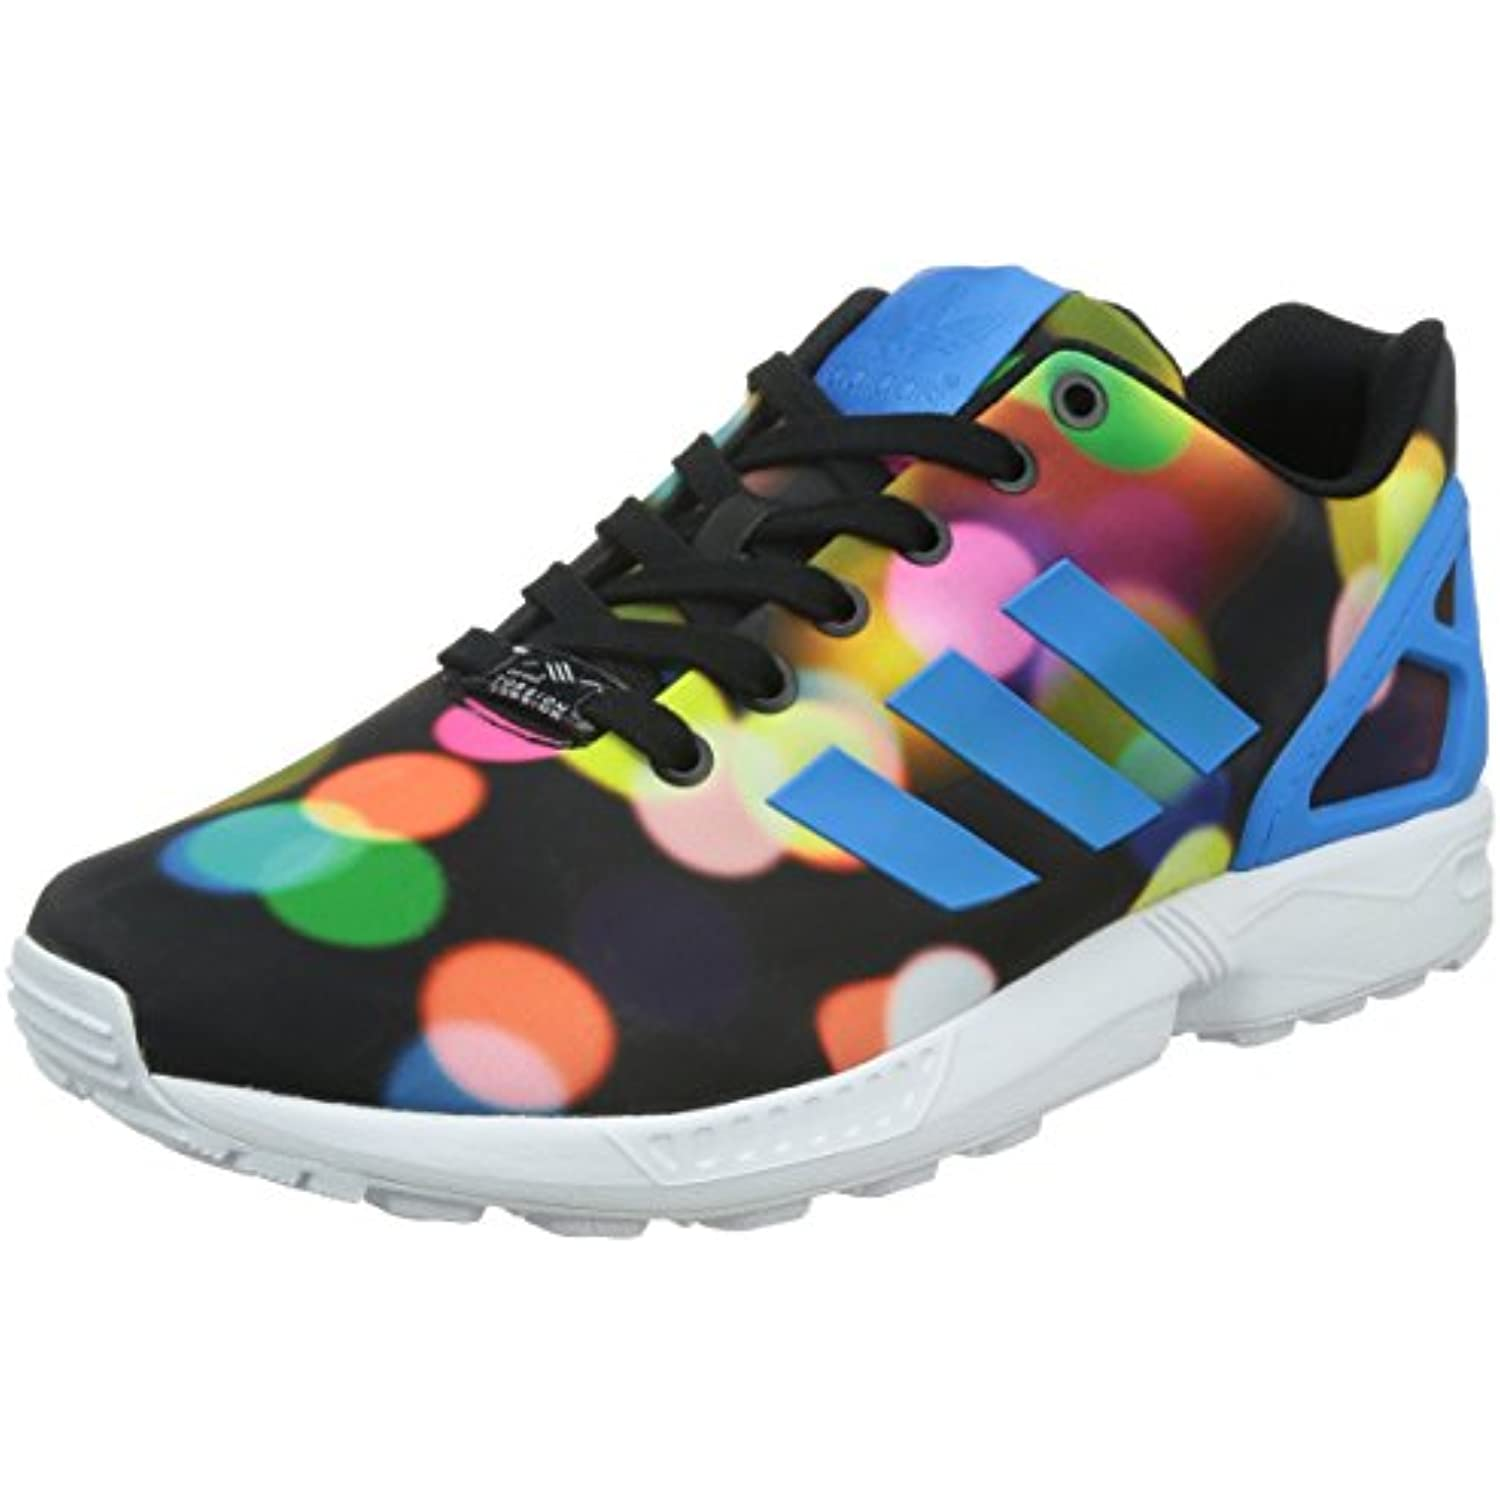 best sneakers 80d1c 7f4fc Adidas - - - B23984 - Chaussures de Running - Homme - B00PAD7TOW - c85246